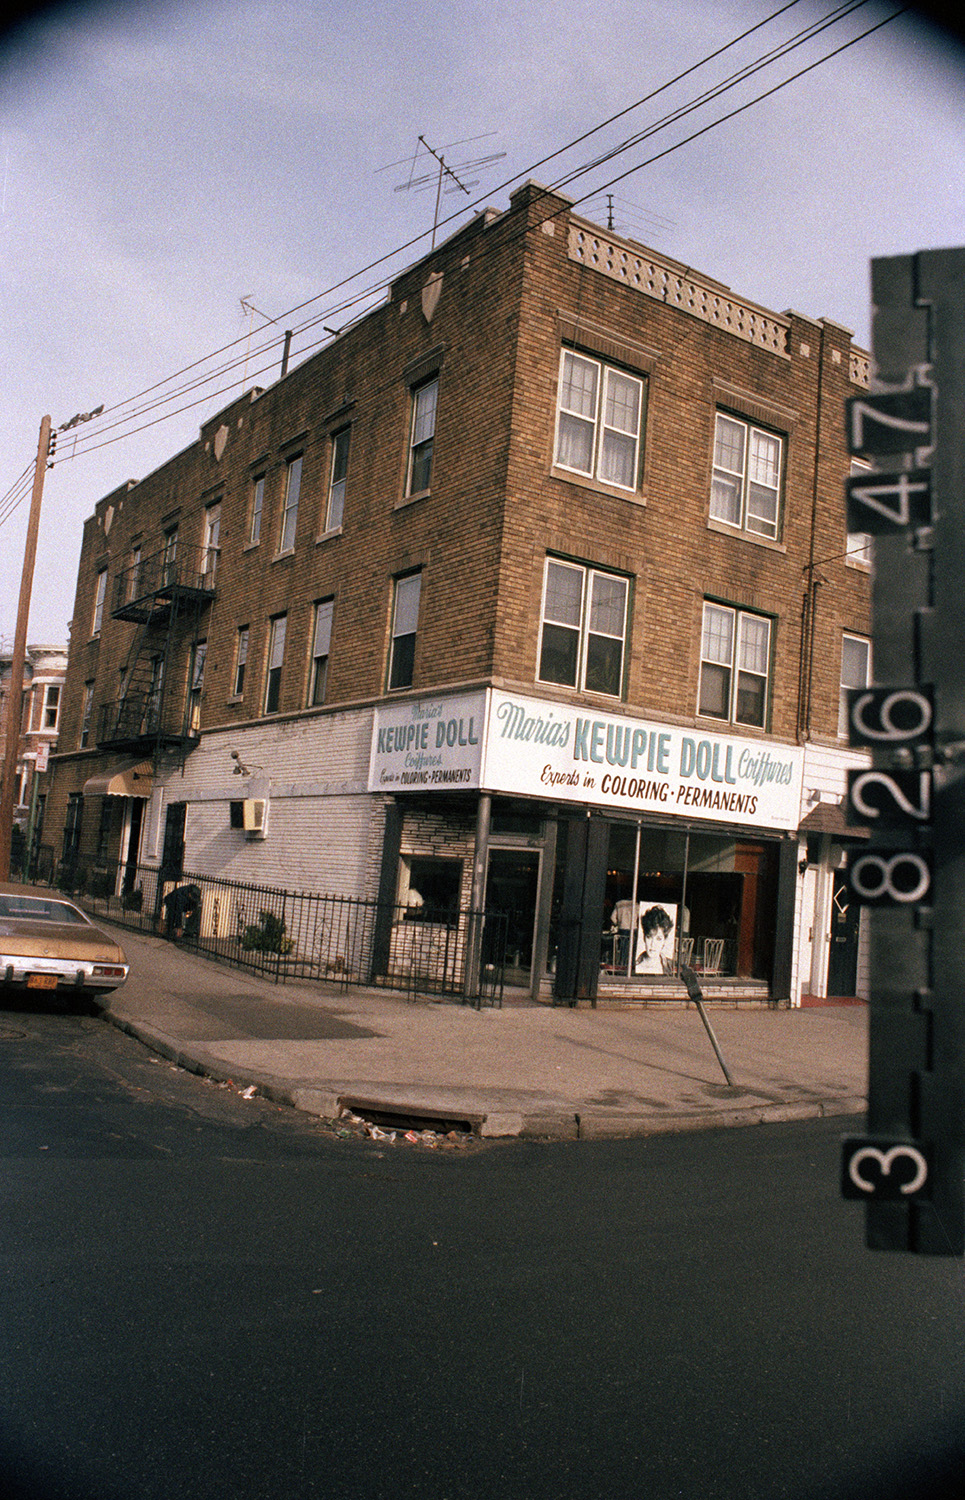 5424 8th Ave. (at 54th St.), Brooklyn, 1983-1988. NYC Municipal Archives.